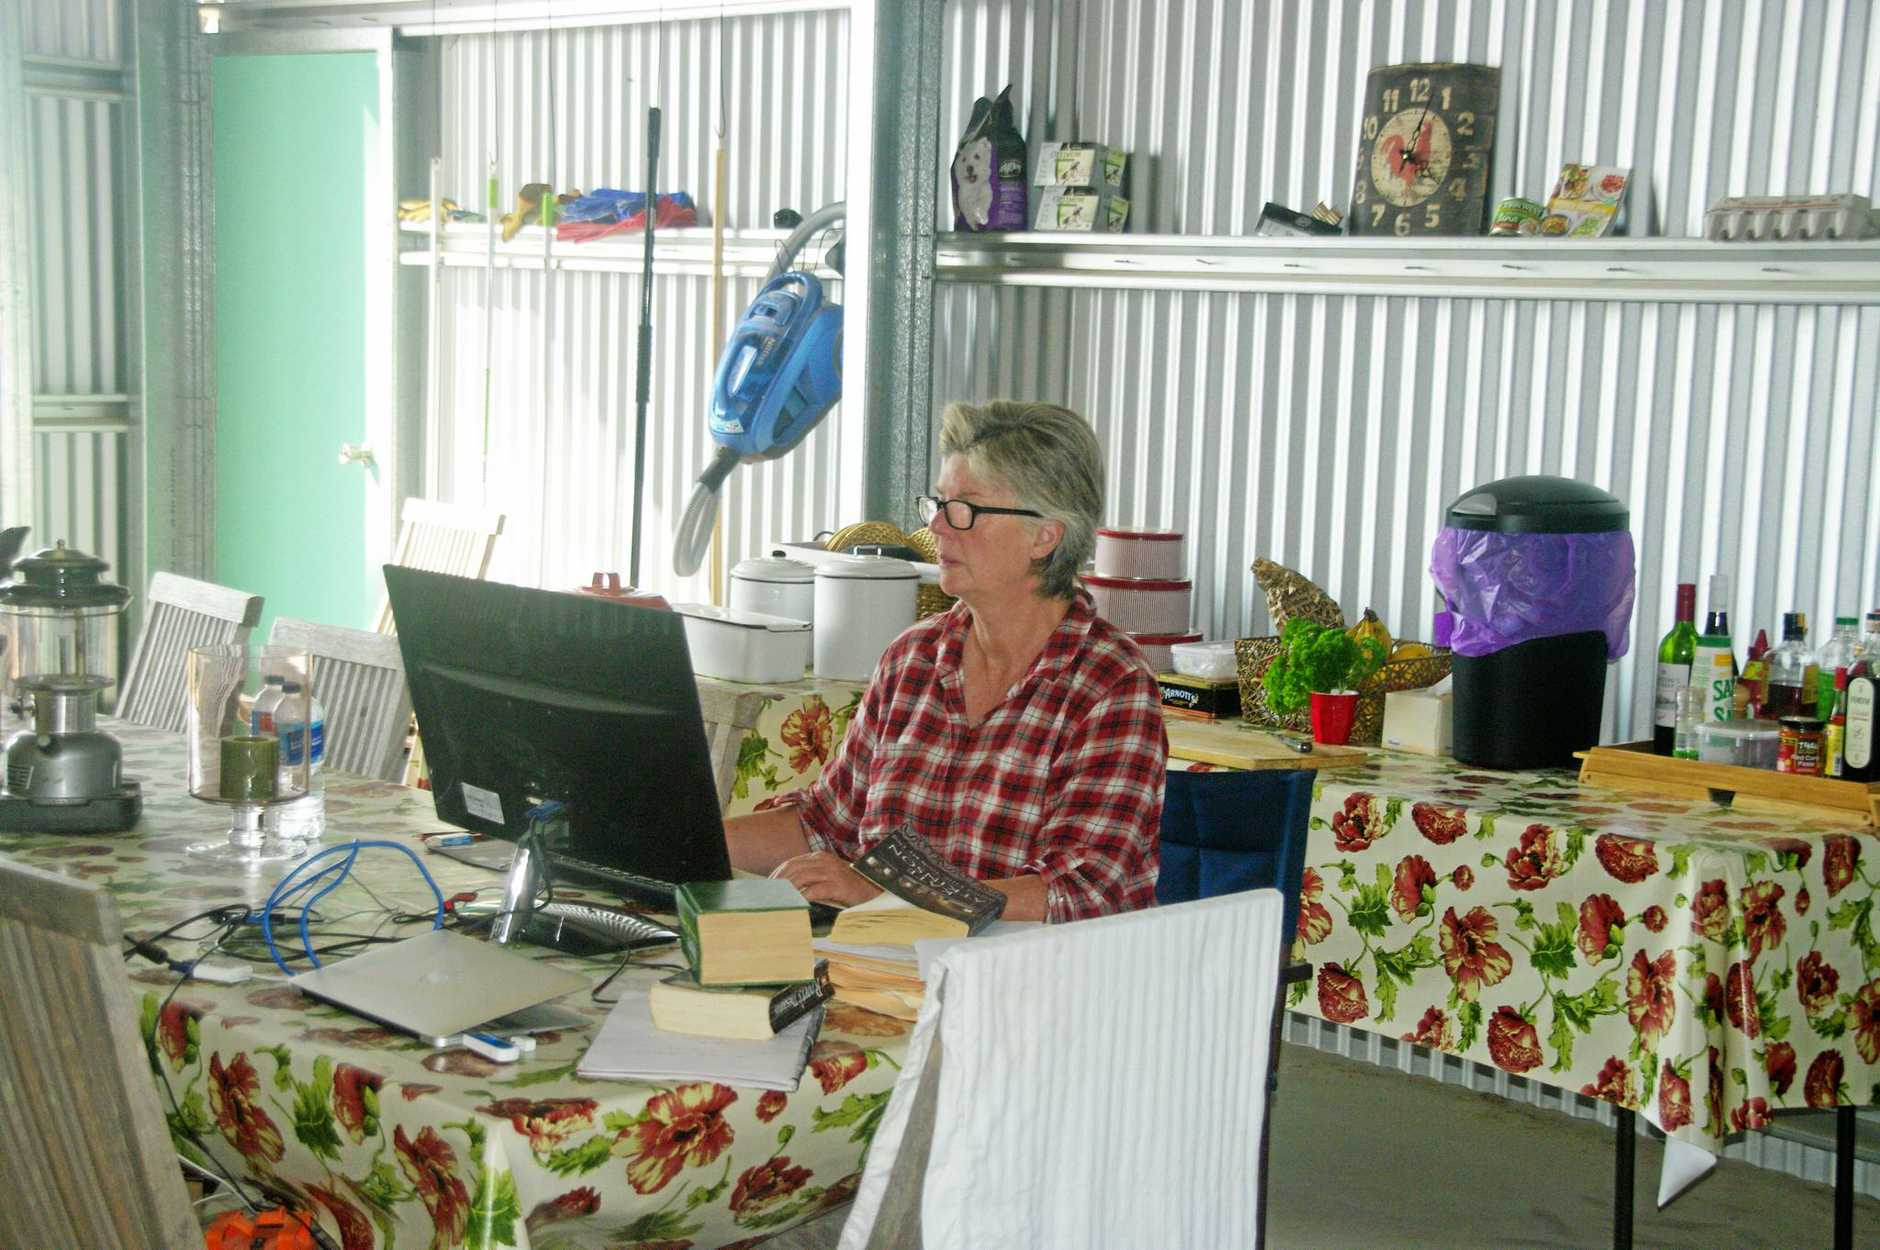 Even in a tin shed Susan sticks to a regime of writing.